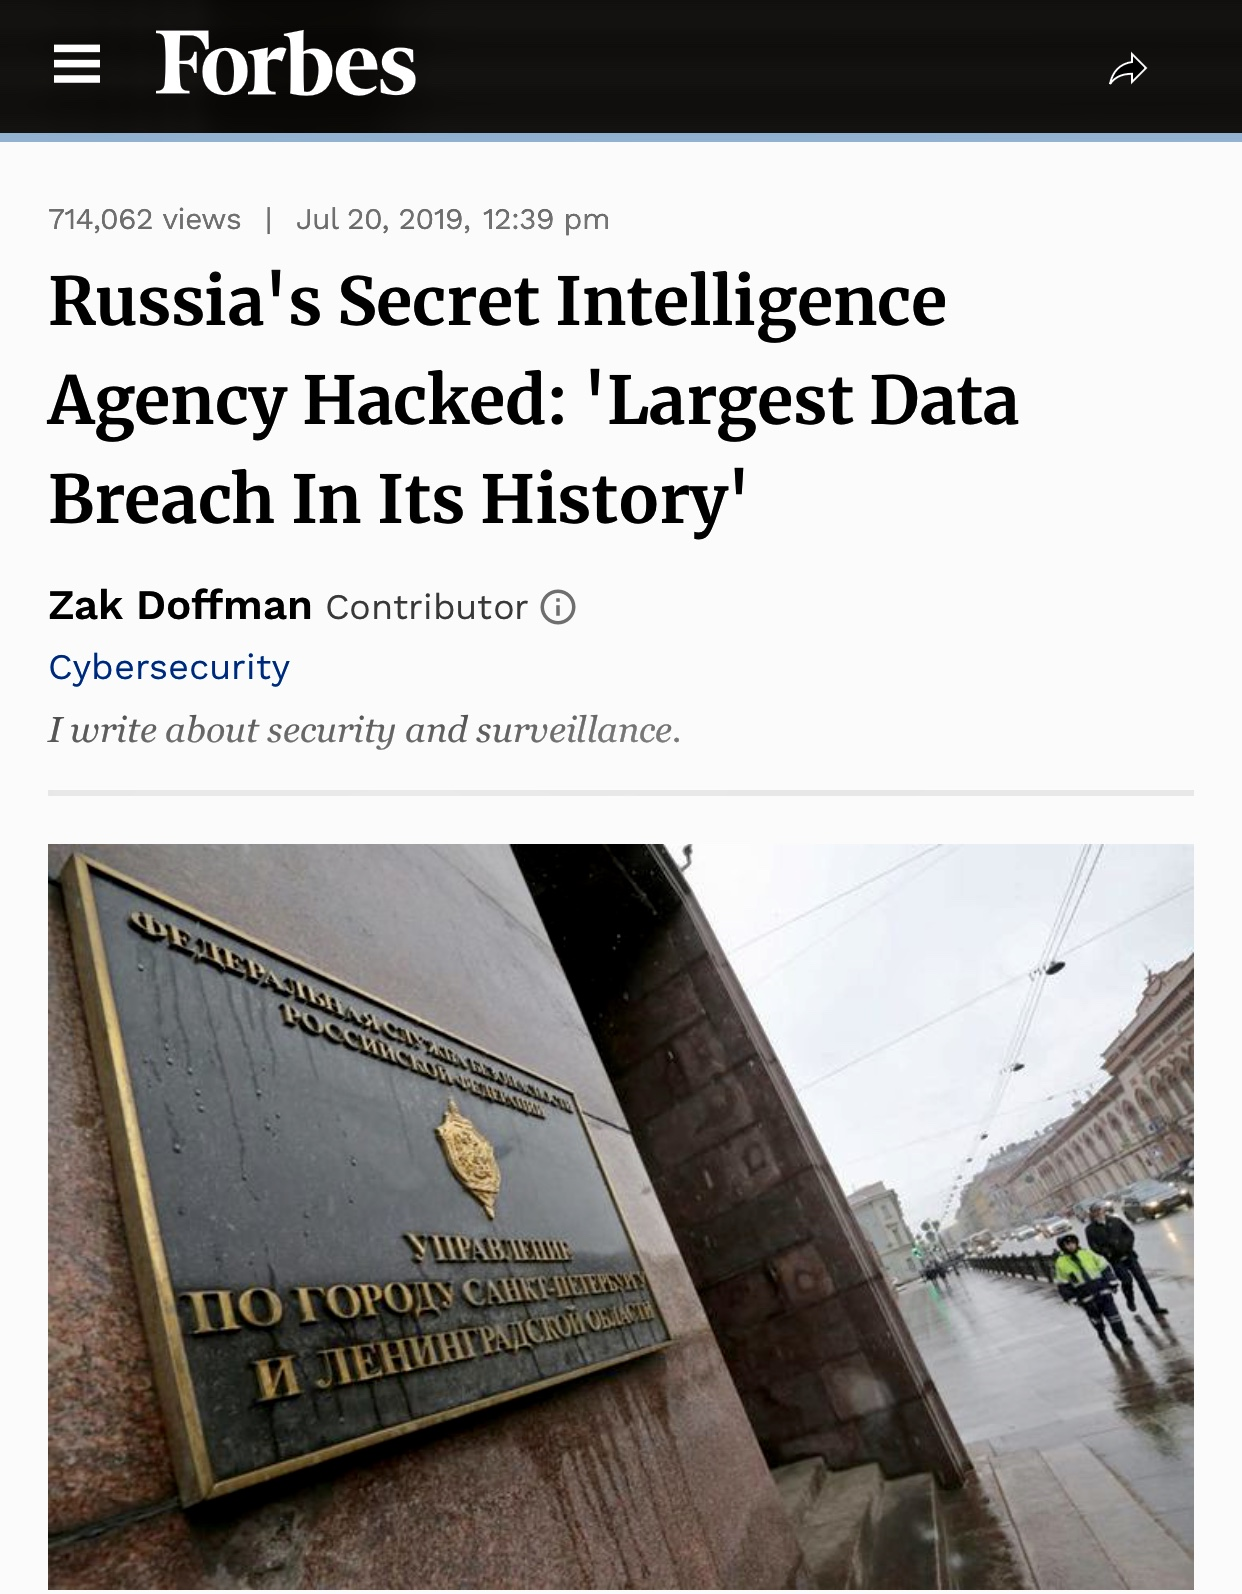 Russia's Secret Intelligence Agency Hacked: 'Largest Data Breach In Its History'